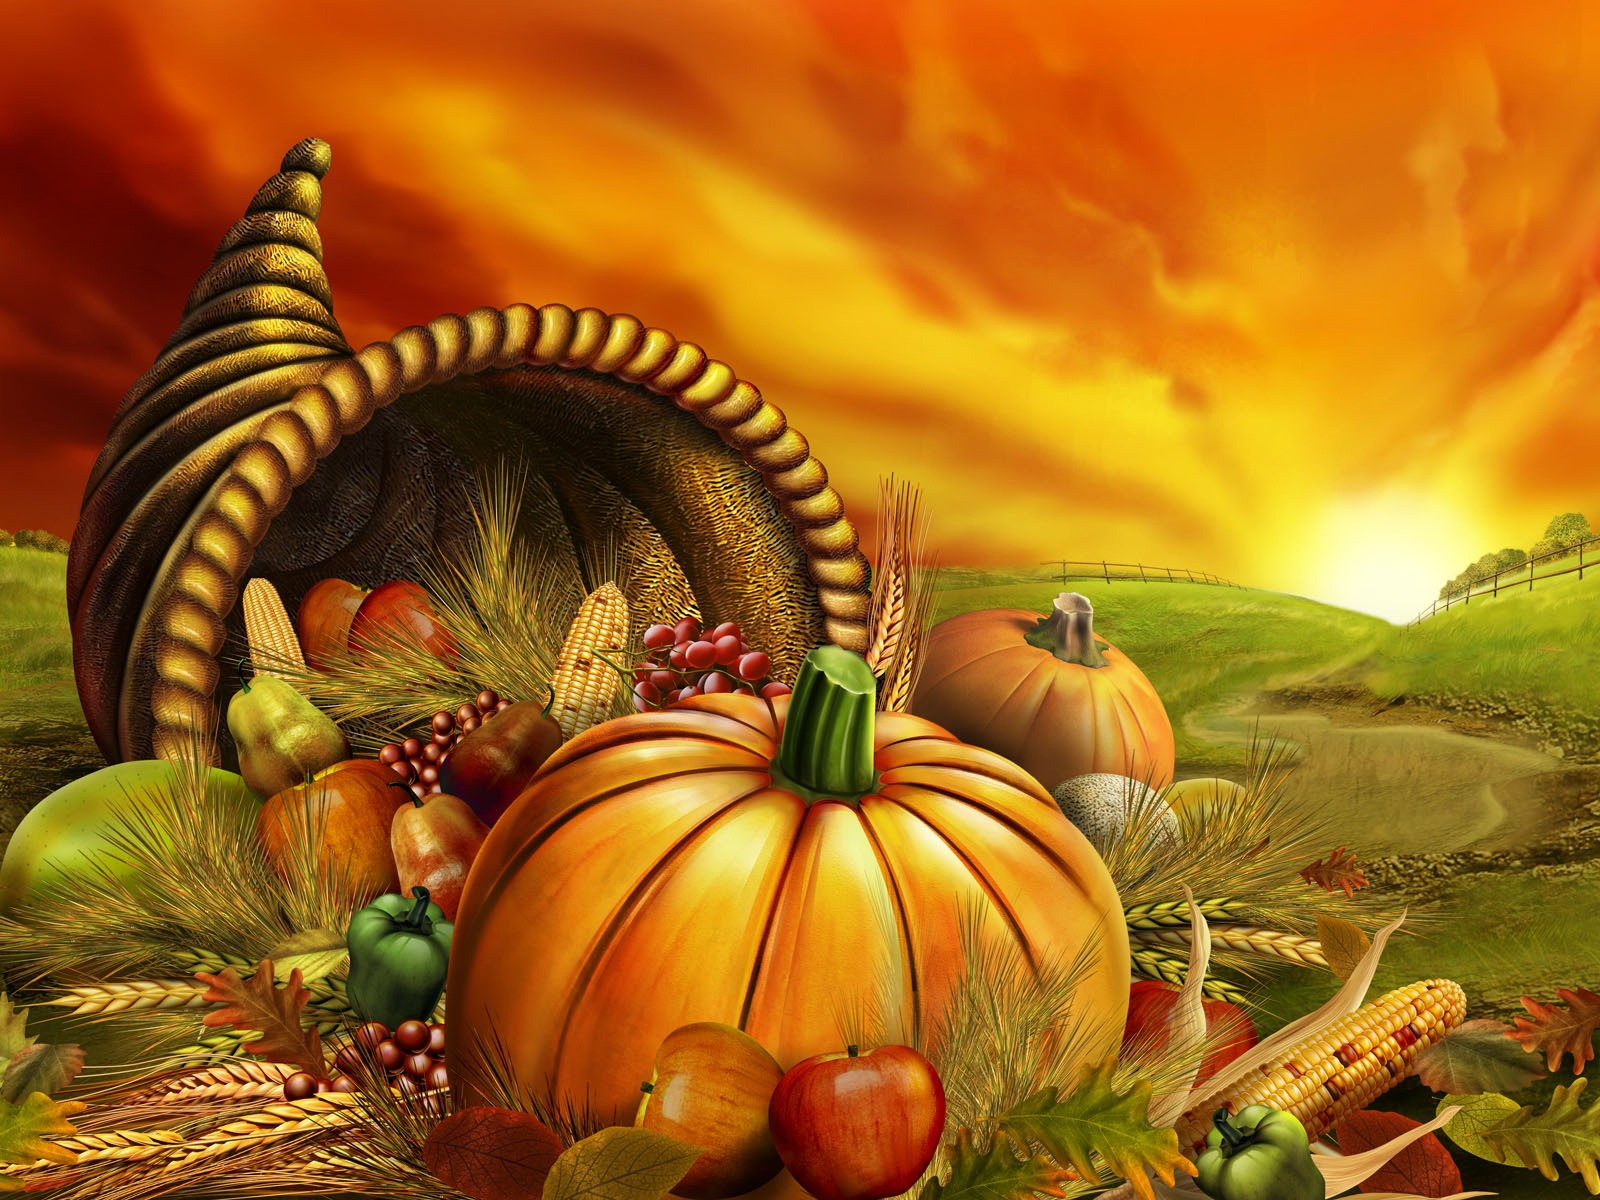 50] Thanksgiving Wallpaper and Screensavers on WallpaperSafari 1600x1200